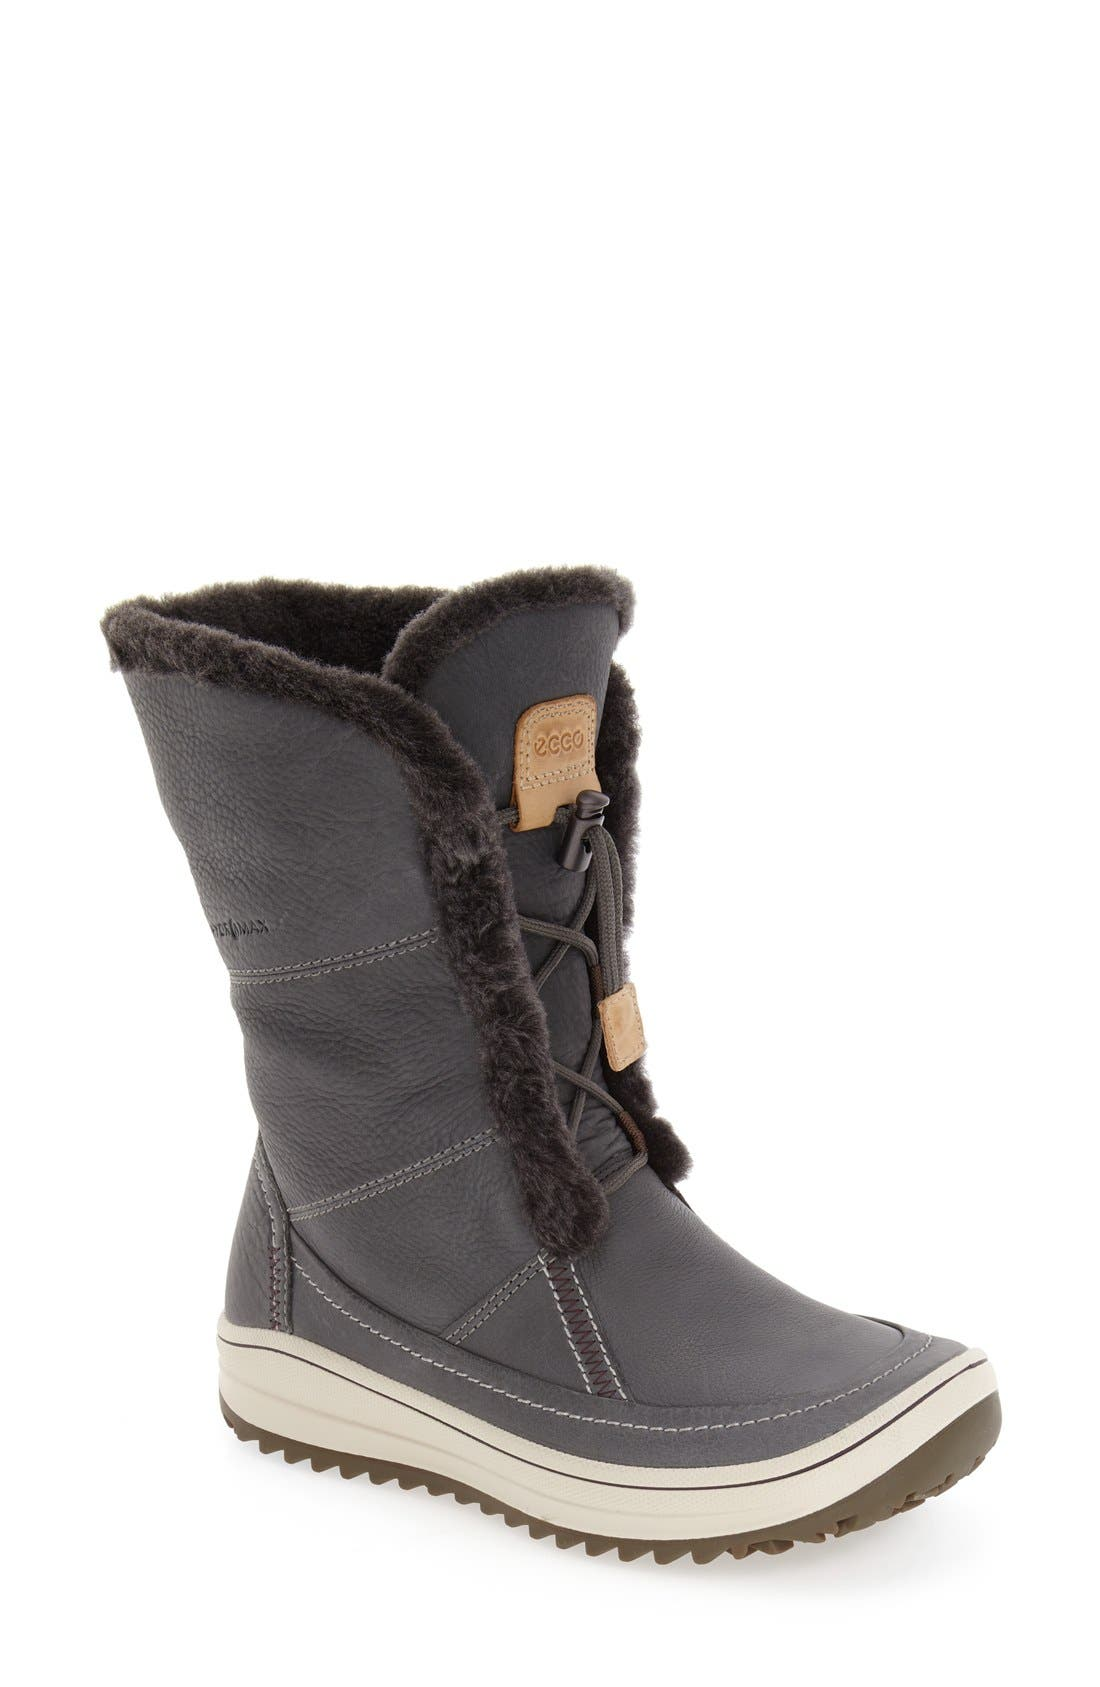 Alternate Image 1 Selected - ECCO 'Trace' Snow Boot (Women)